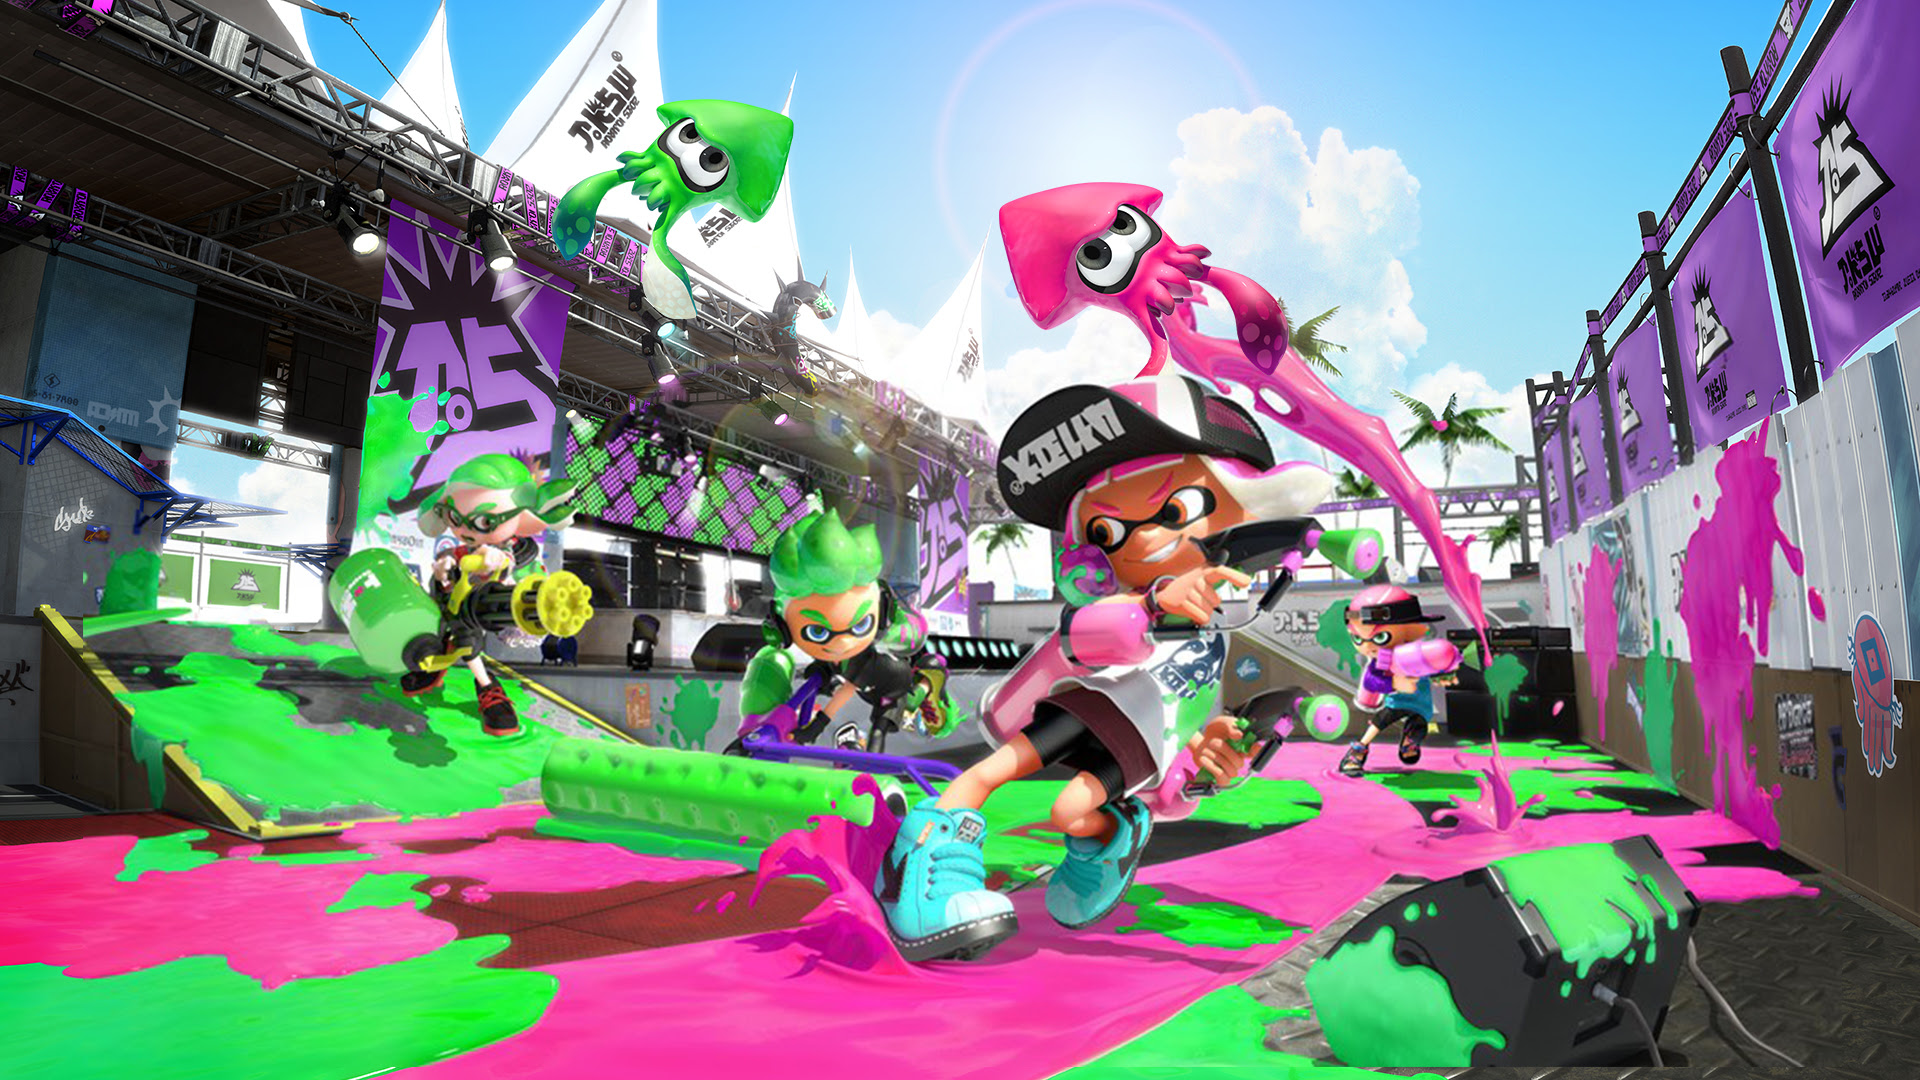 Splatoon 2 is getting a new ranked mode centered around teams screenshot